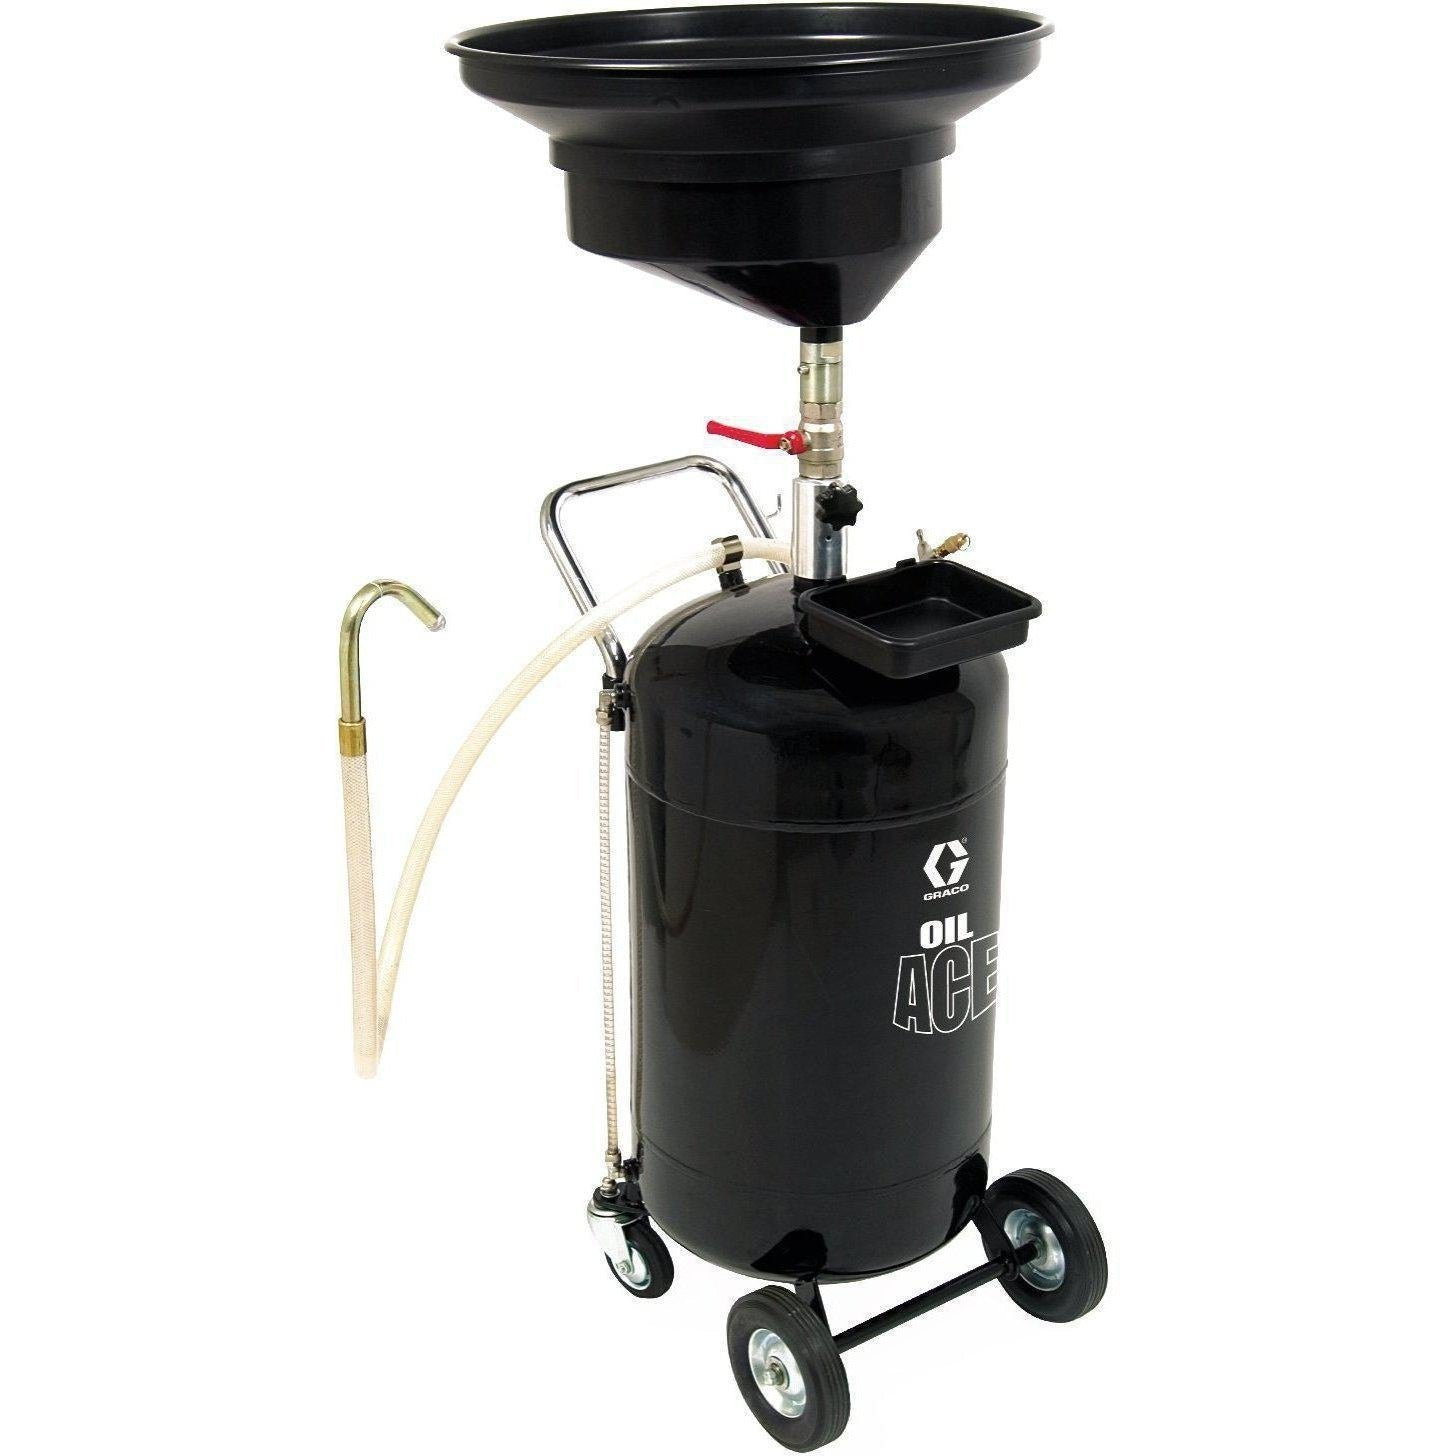 Graco 119577 24 Gal (90 L) Steel-Tank Pressurized Oil Drain - Fireball Equipment Ltd.